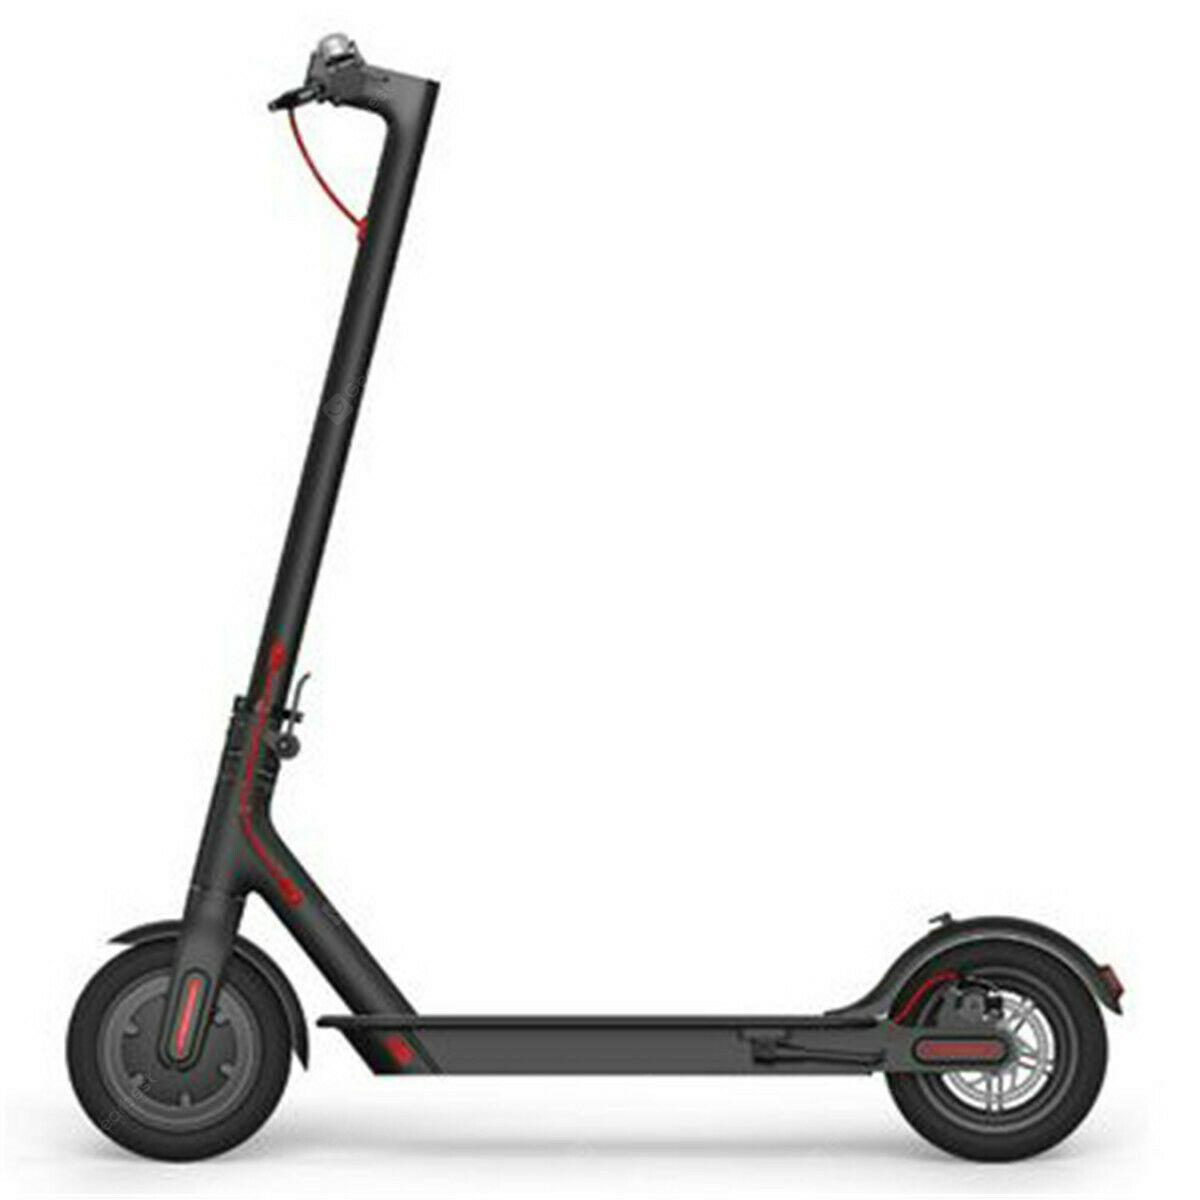 Original Xiaomi MI M365 Folding Electric Scooter E-ABS Europe Version 3-5day delivery - Black Poland (entrep�t EU) 3% commissions